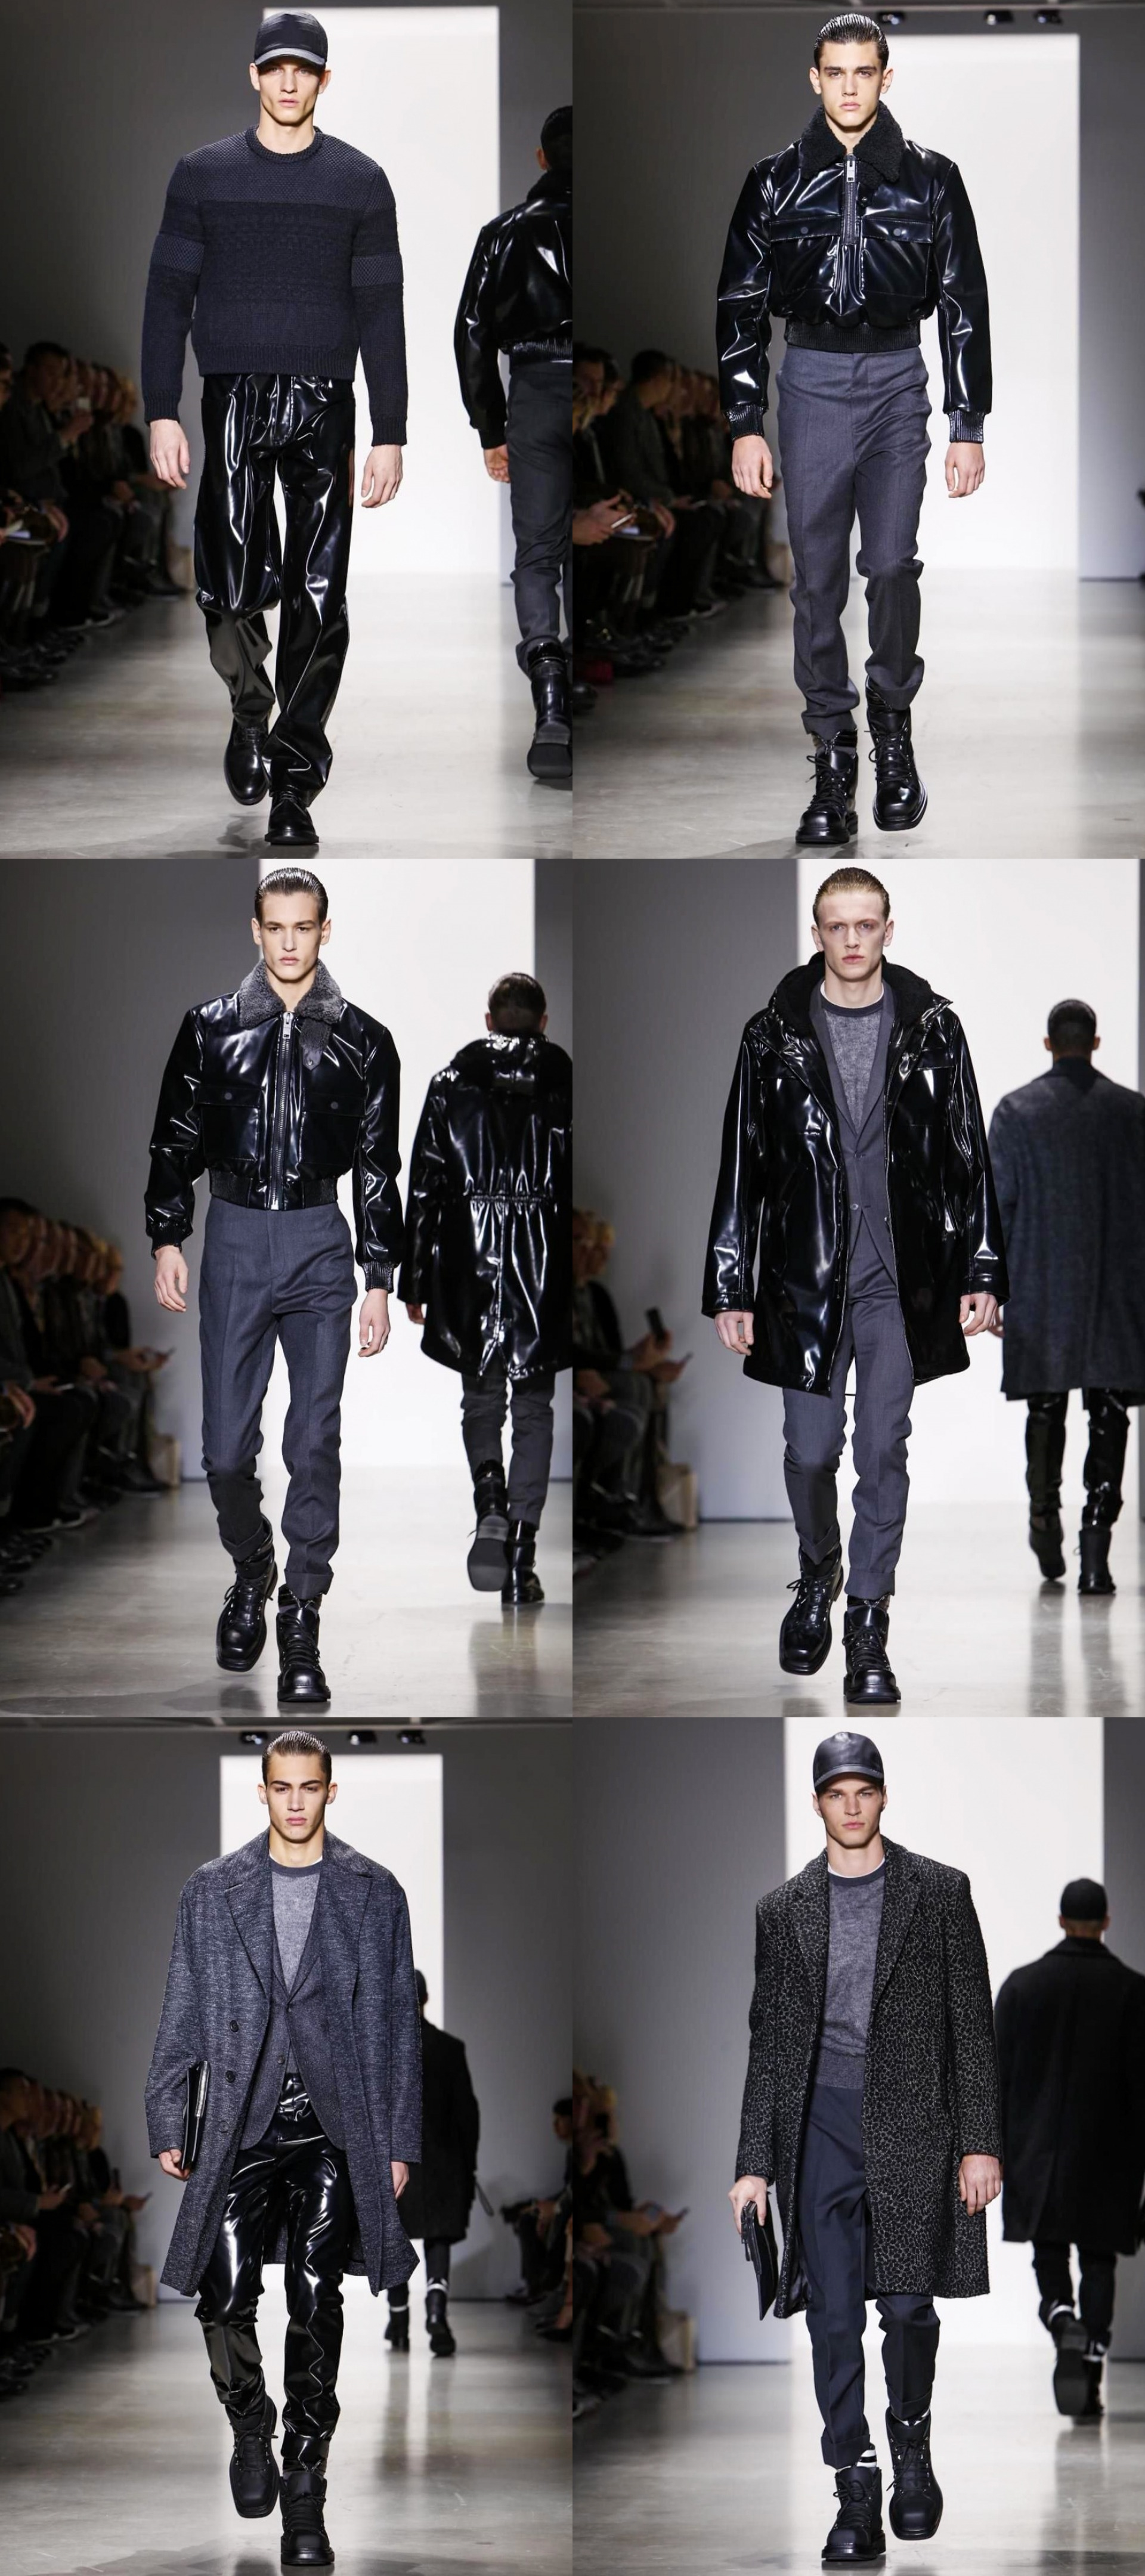 CALVIN KLEIN, fw15, fall winter 2015, milan fashion week, desfile 2015, moda masculina, tendencia masculina, menswear, fashion blogger, blogger, style, blogger, fashion blogger, moda sem censura, alex cursino, 4